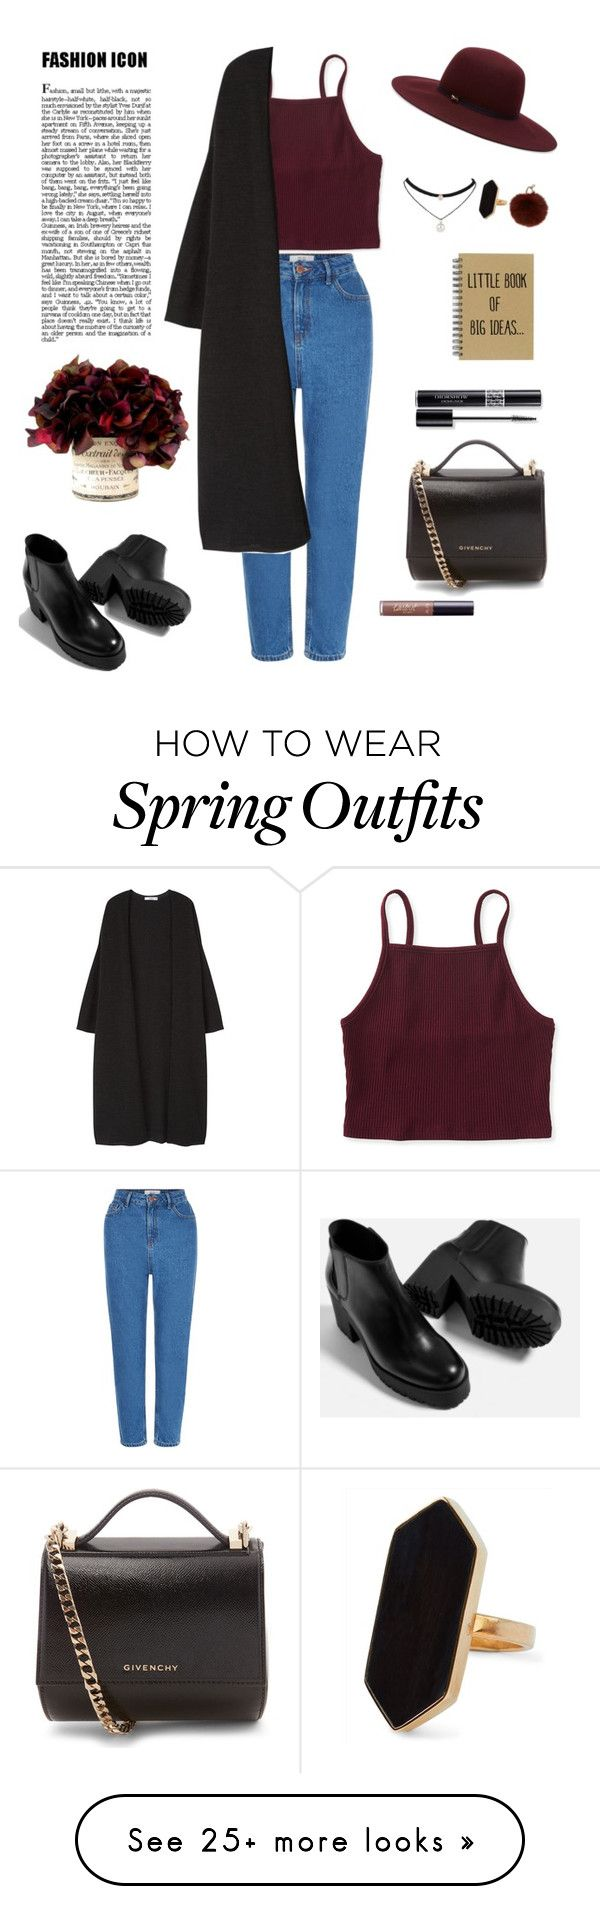 """Autumn outfit 🍁 #autumn #fashion #casualfashion #autumnfashion"" by daryabartkevich on Polyvore featuring New Look, Aéropostale, MANGO, Piel Leather, Ted Baker, Givenchy, tarte, Christian Dior, Jaeger and Yves Salomon"